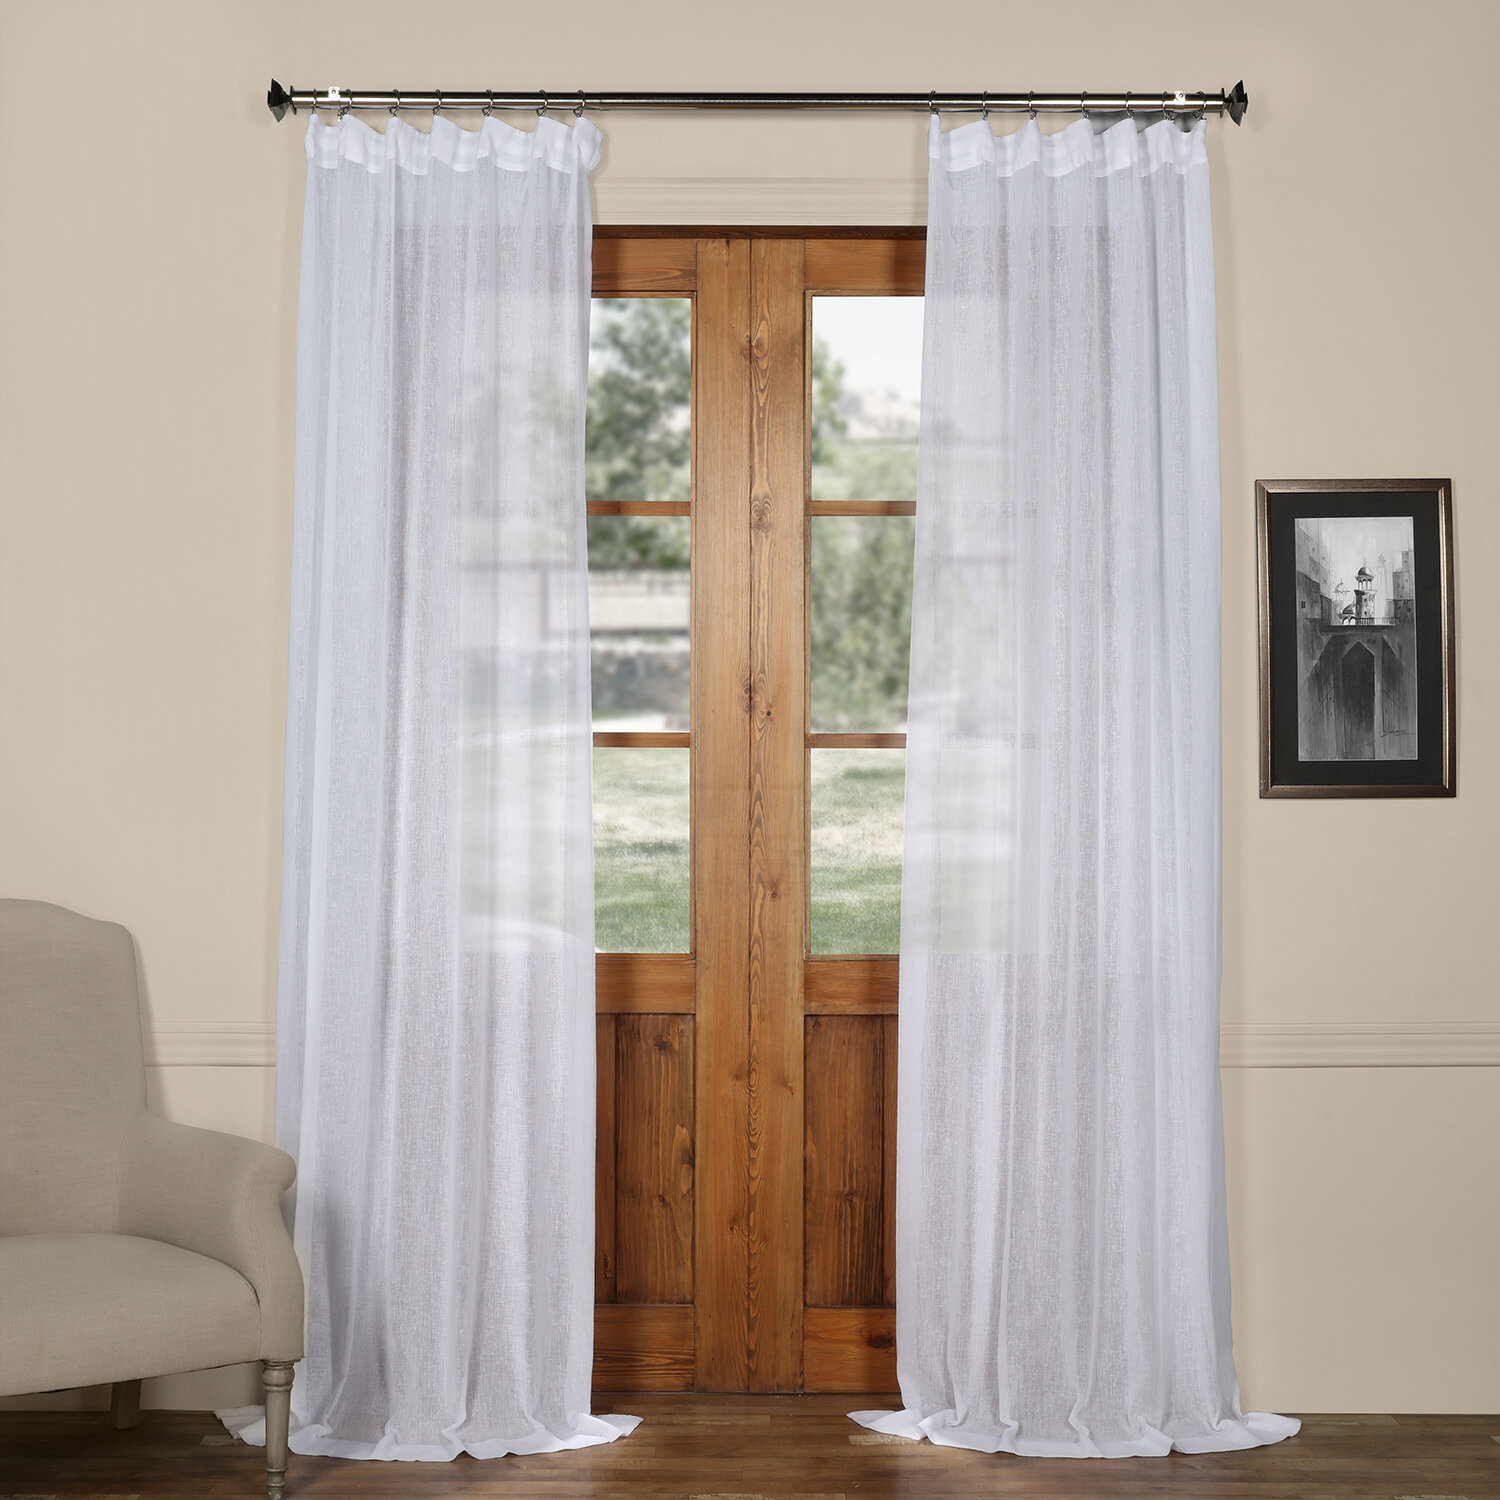 Bowley Solid Sheer Tab Top Single Curtain Panel With Tab Top Sheer Single Curtain Panels (View 7 of 30)